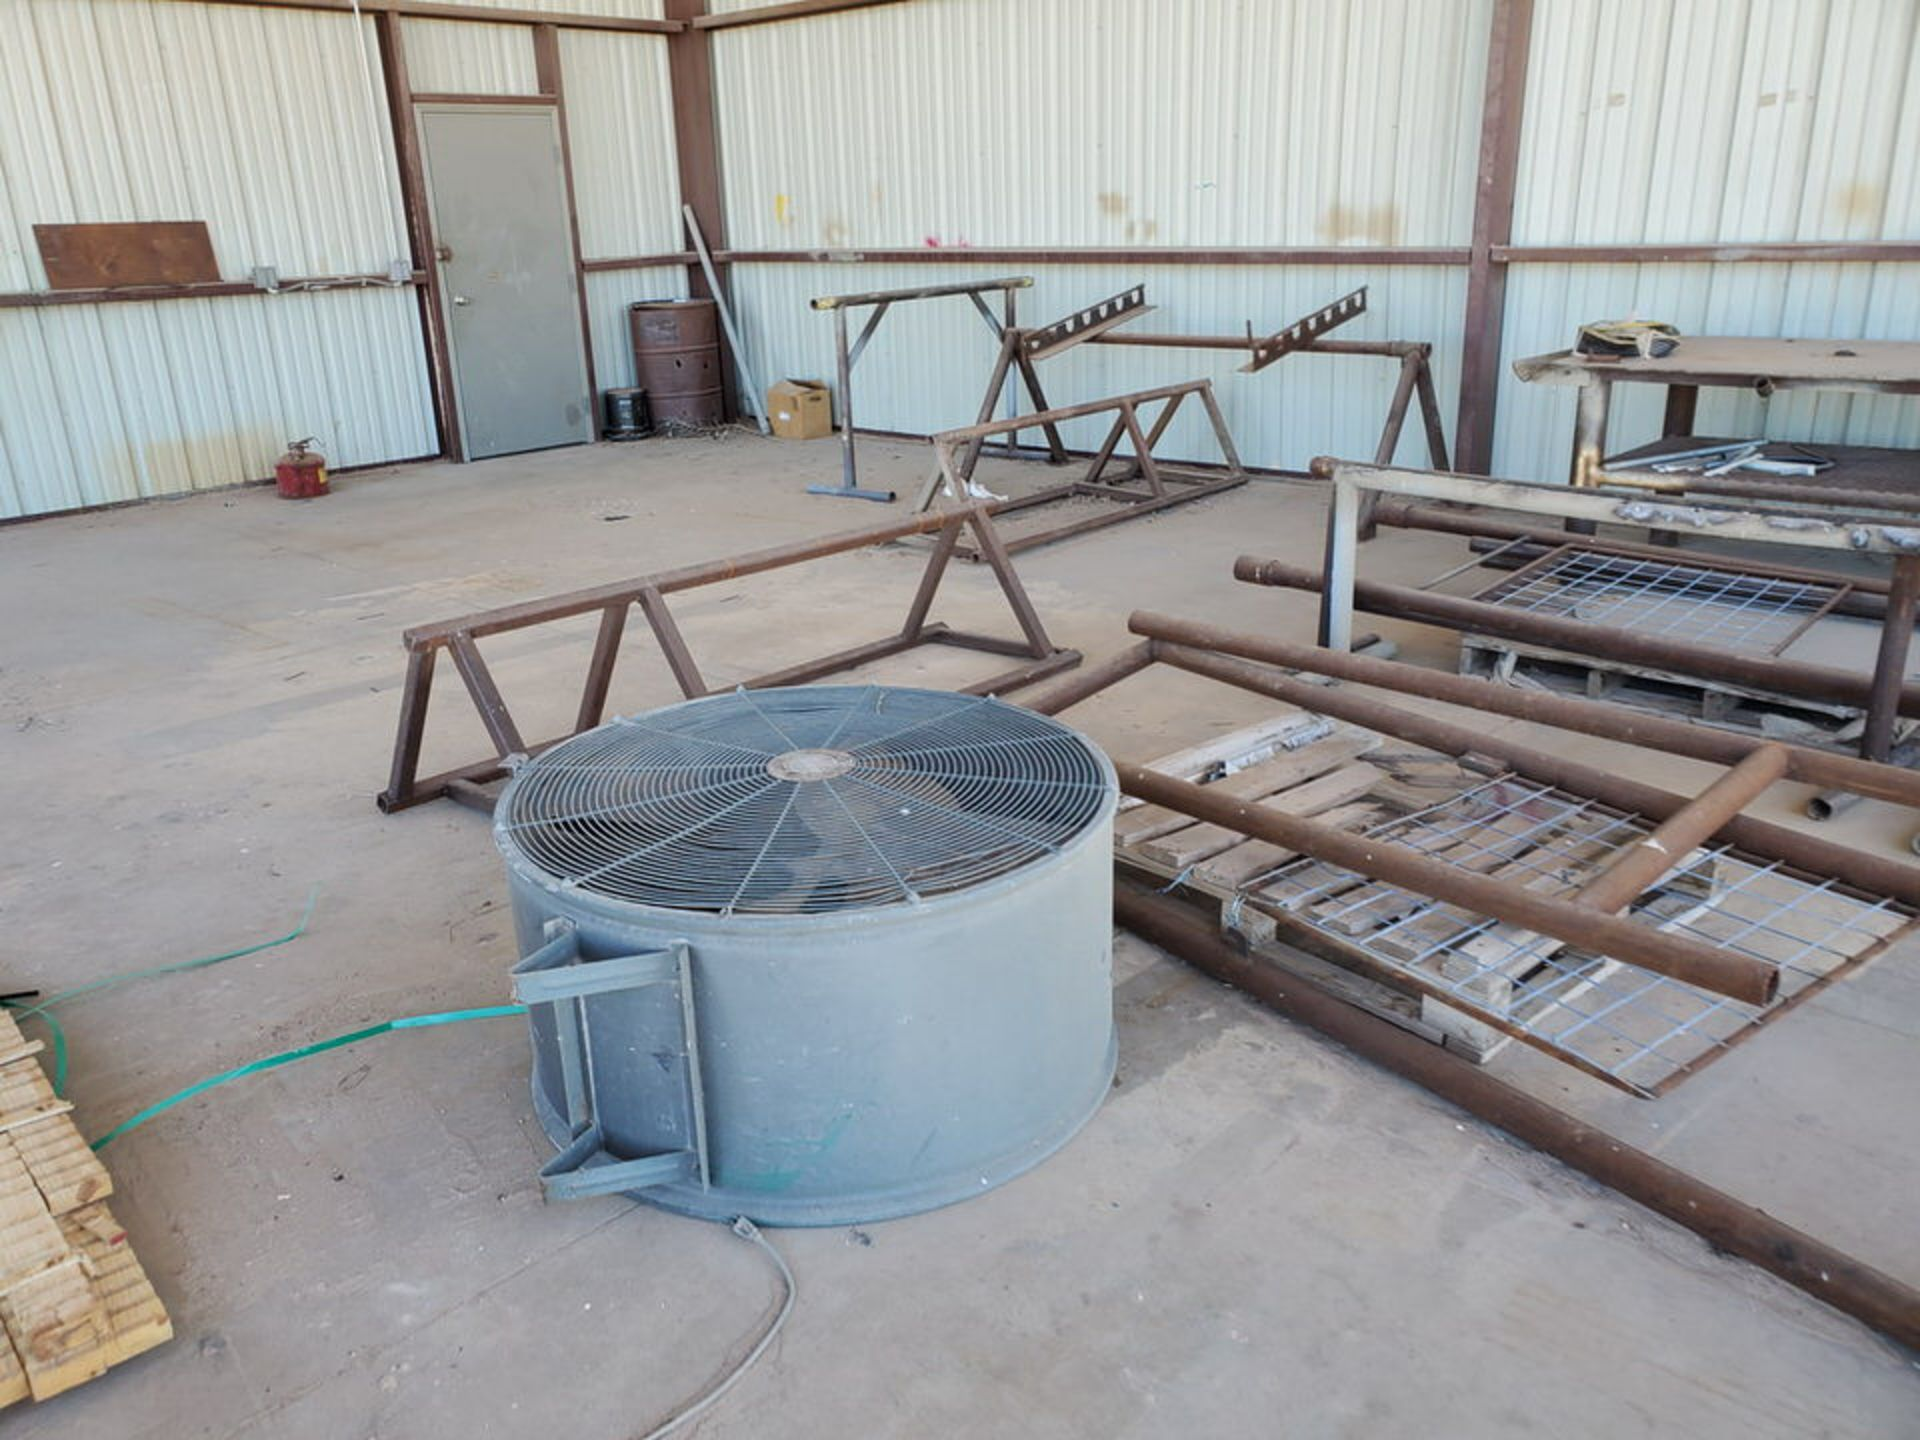 "Misc. Matl. To Include But Not Limited To: 42"" Drum Fan, Saw Horses, Welding Table, etc. - Image 6 of 10"